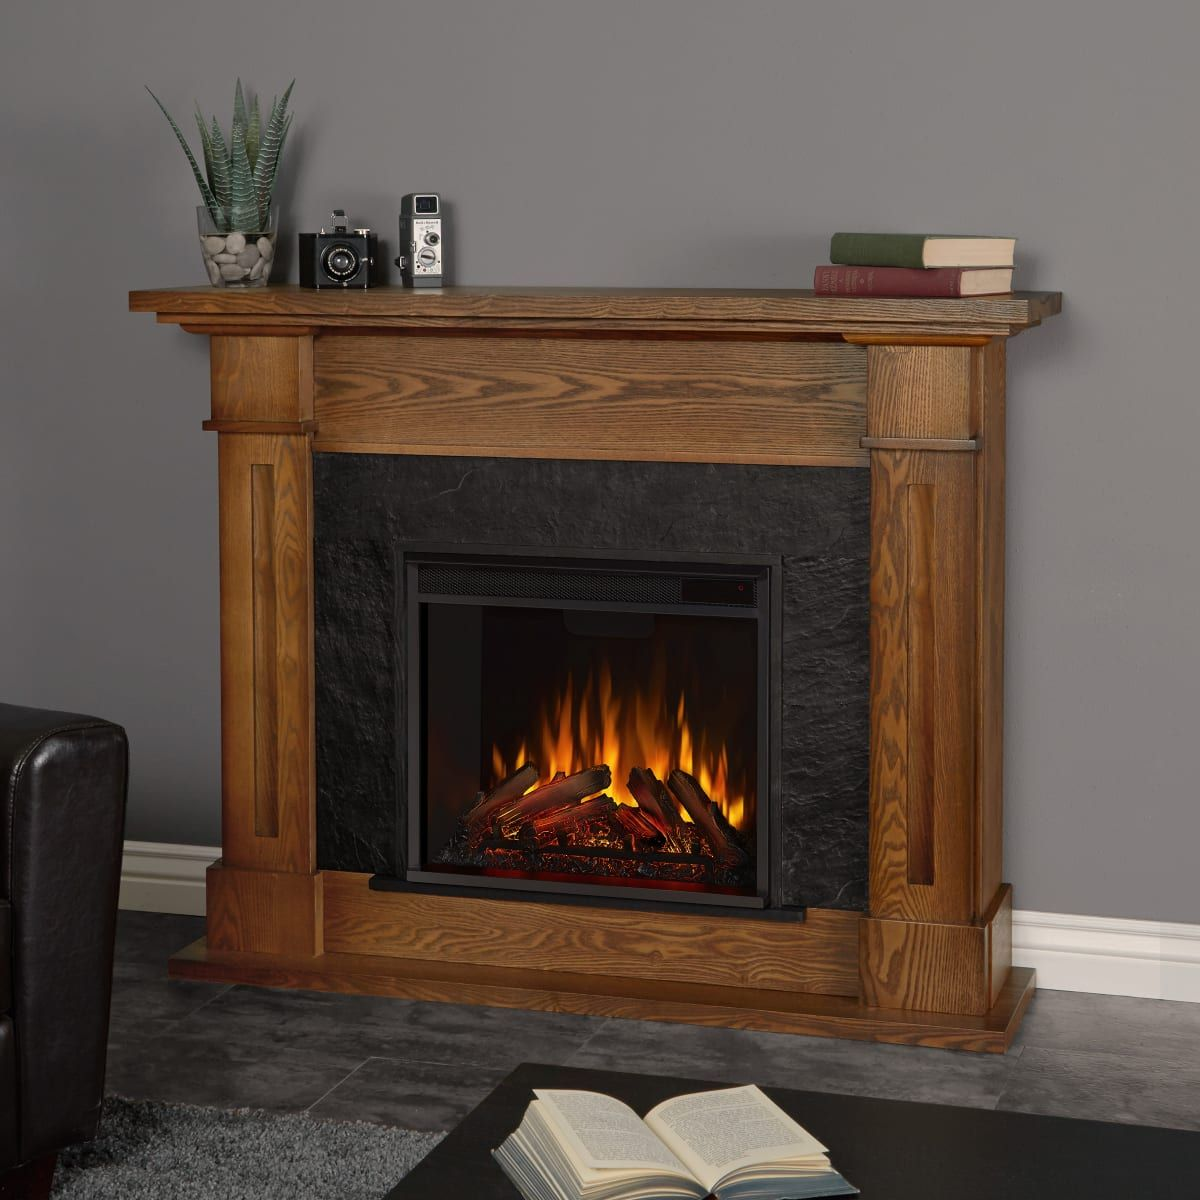 Real Flame 6030e Build Com In 2021 Electric Fireplace Oak Electric Fireplace Electric Fireplace With Mantel